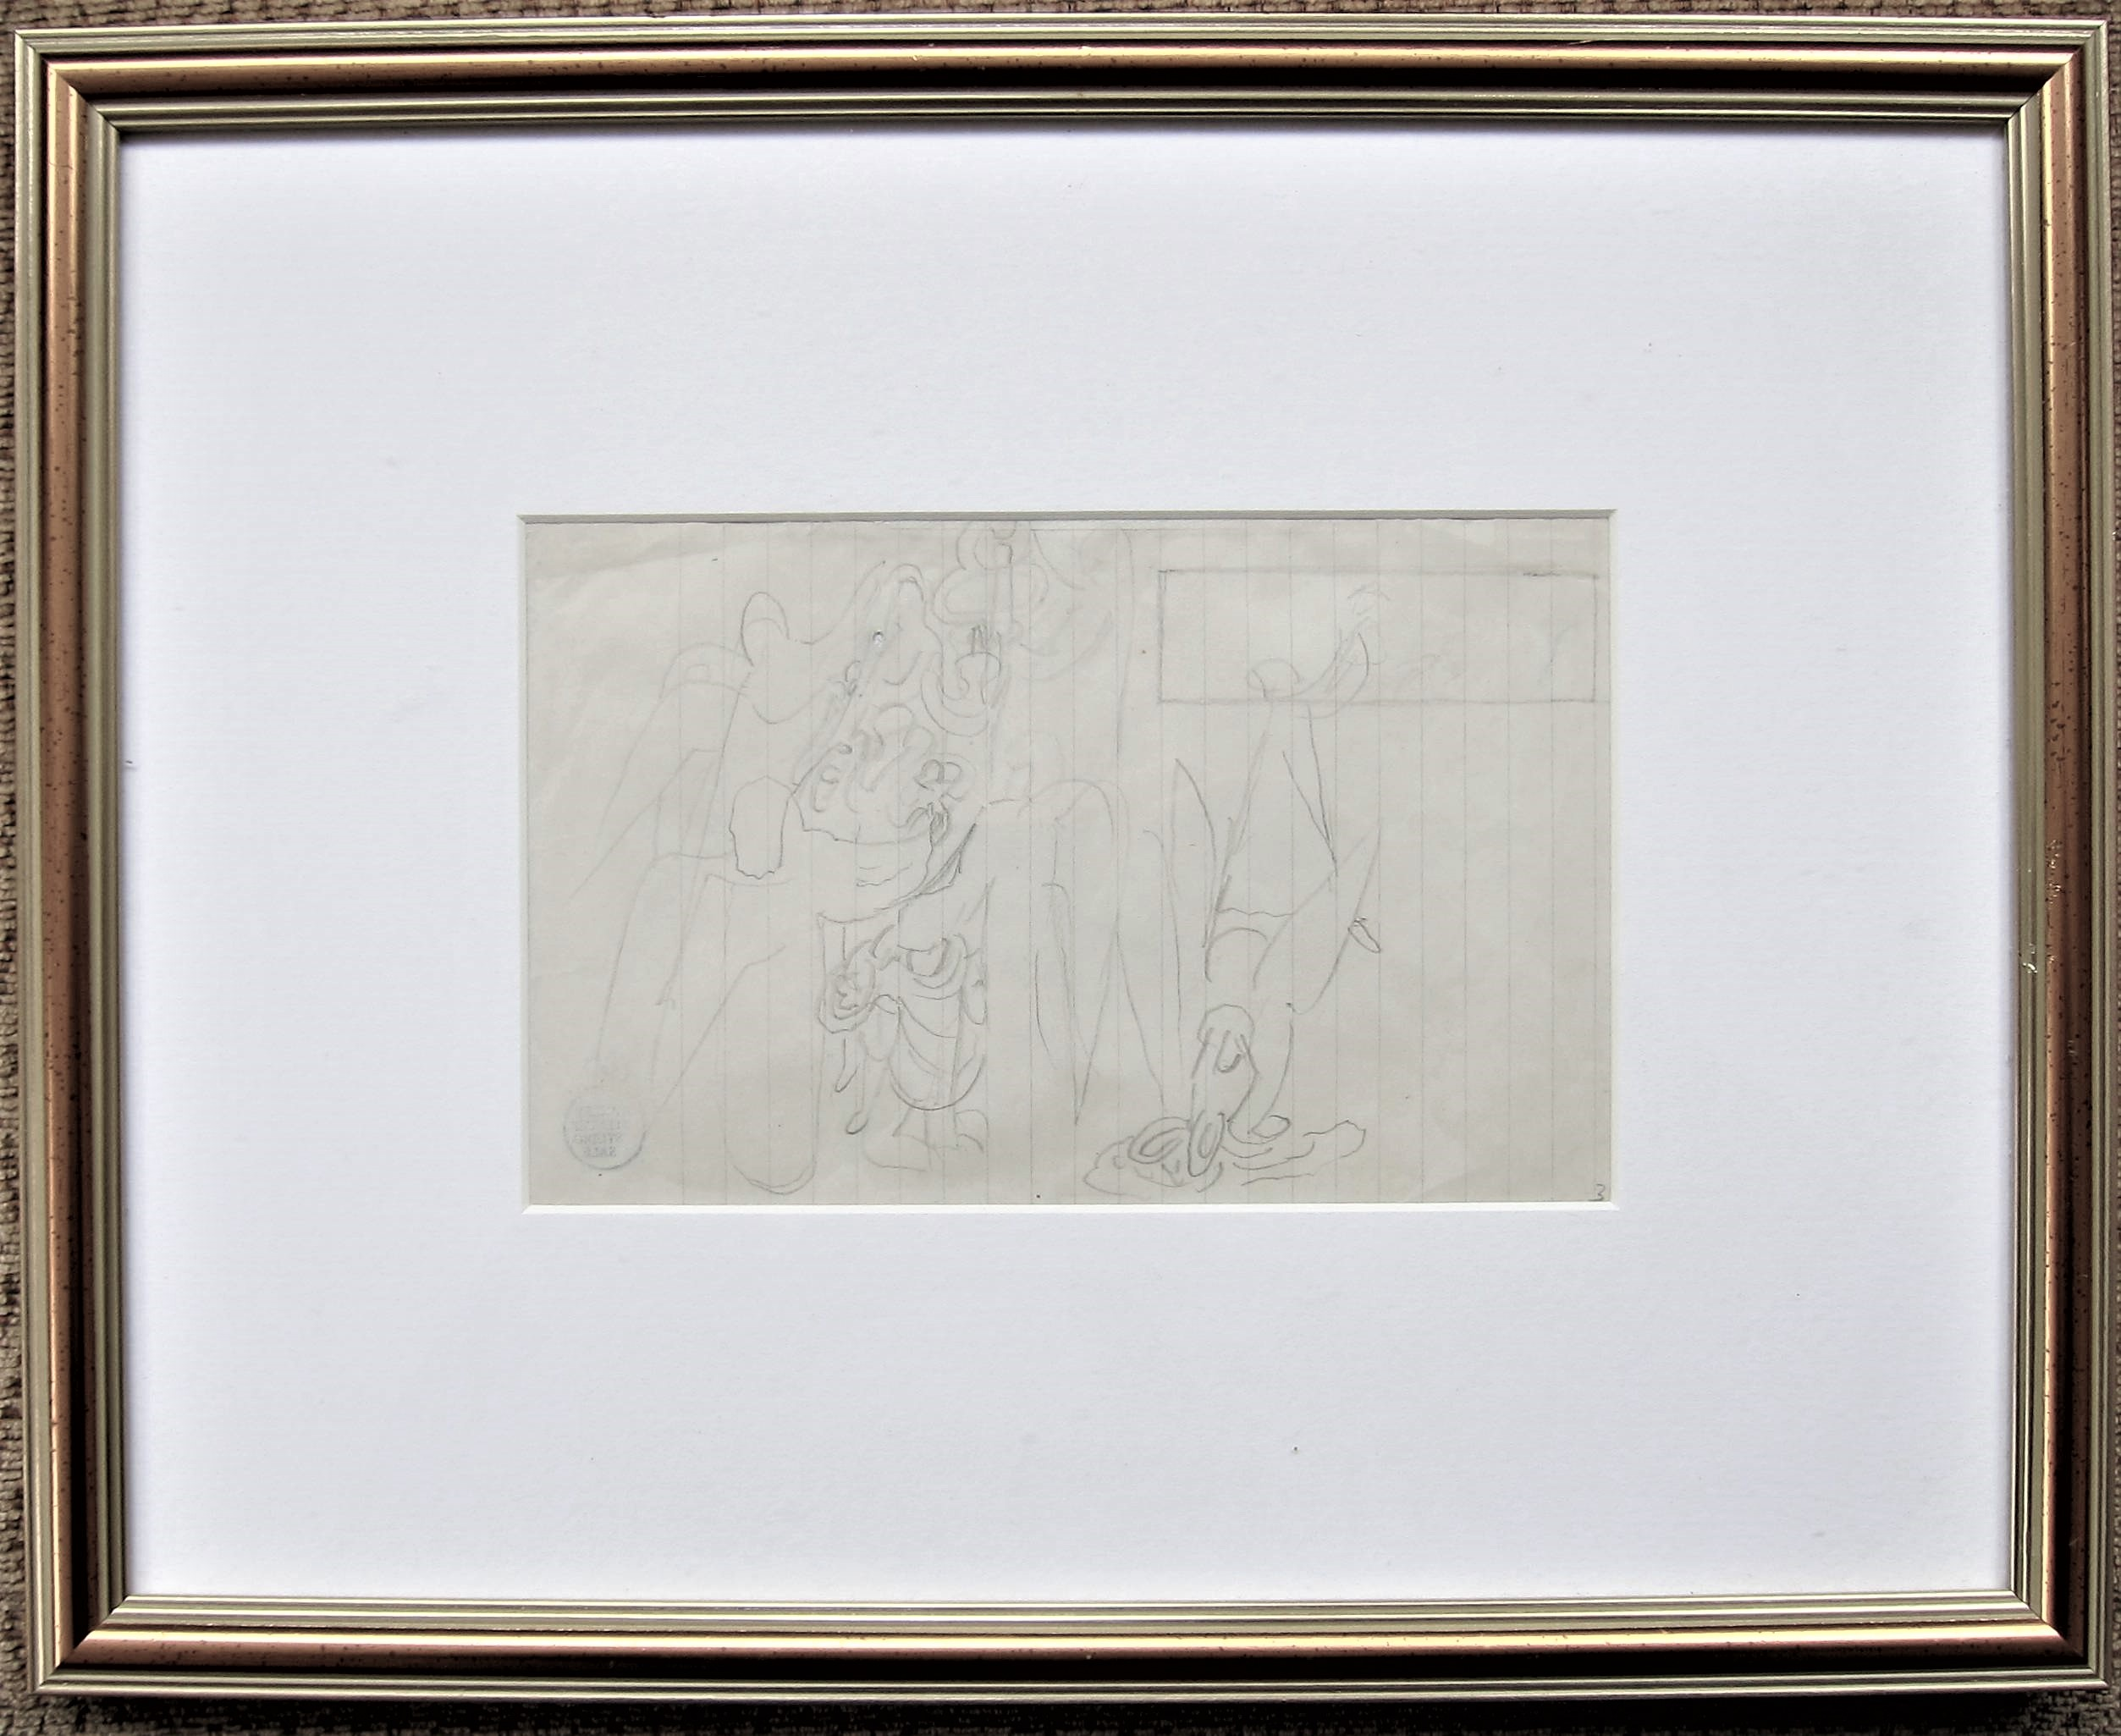 STANLEY SPENCER R.A. [1891-1959]. Group of Angels [Angels of the Apocalypse], 1949. pencil on paper; - Image 2 of 2